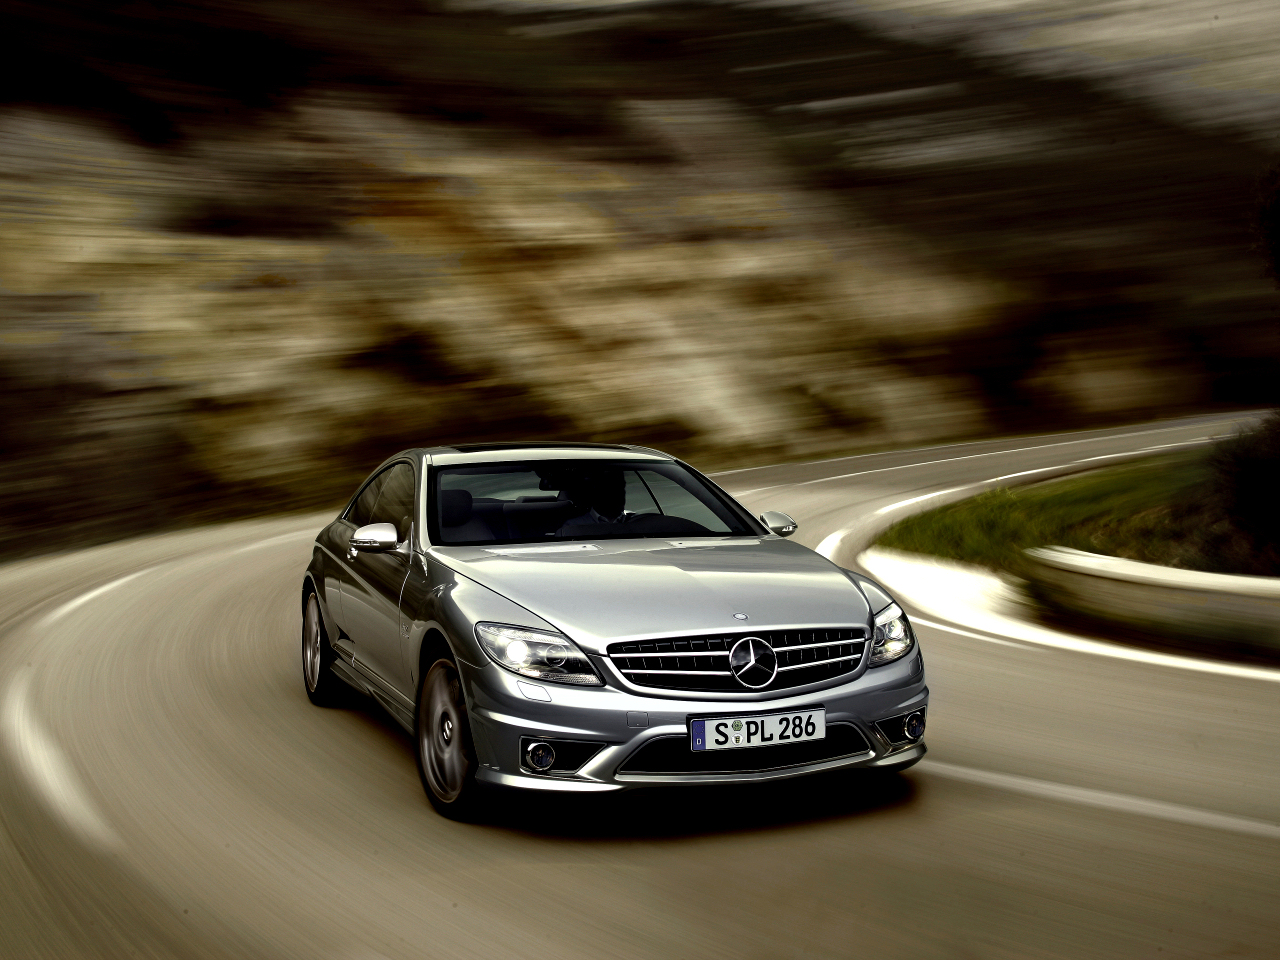 Mercedes-Benz CL 63 AMG - driving